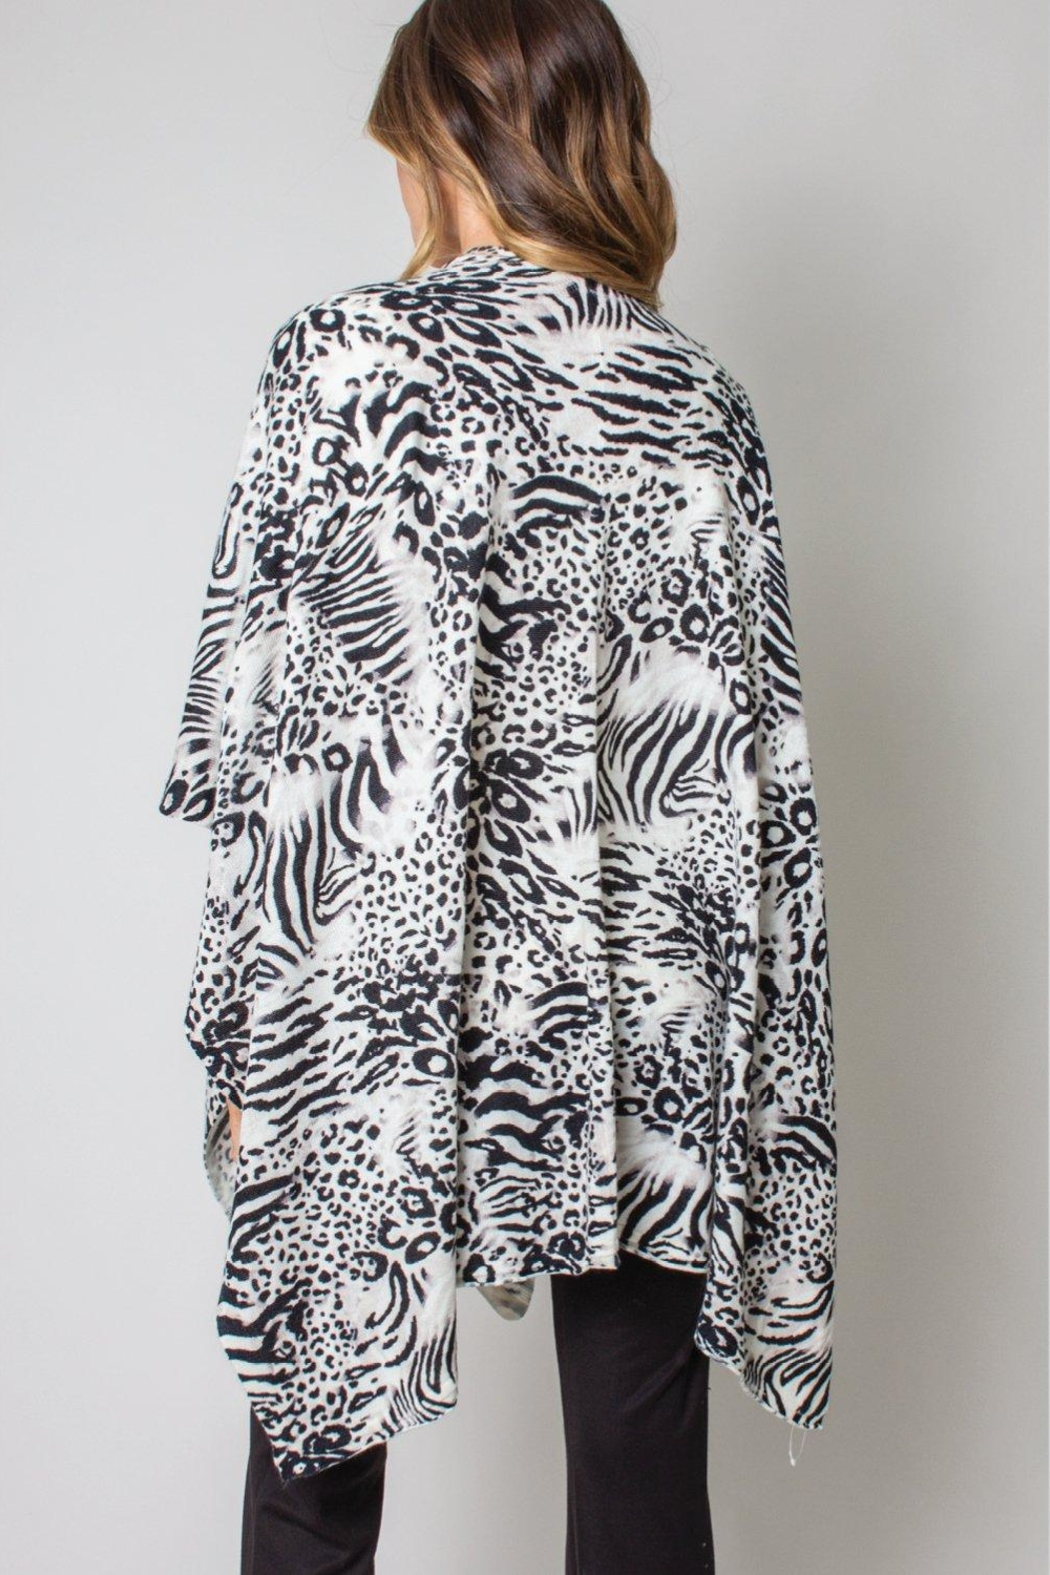 Simply Noelle Bordeaux Cardi Wrap Poncho Black And White Leopard - Front Full Image